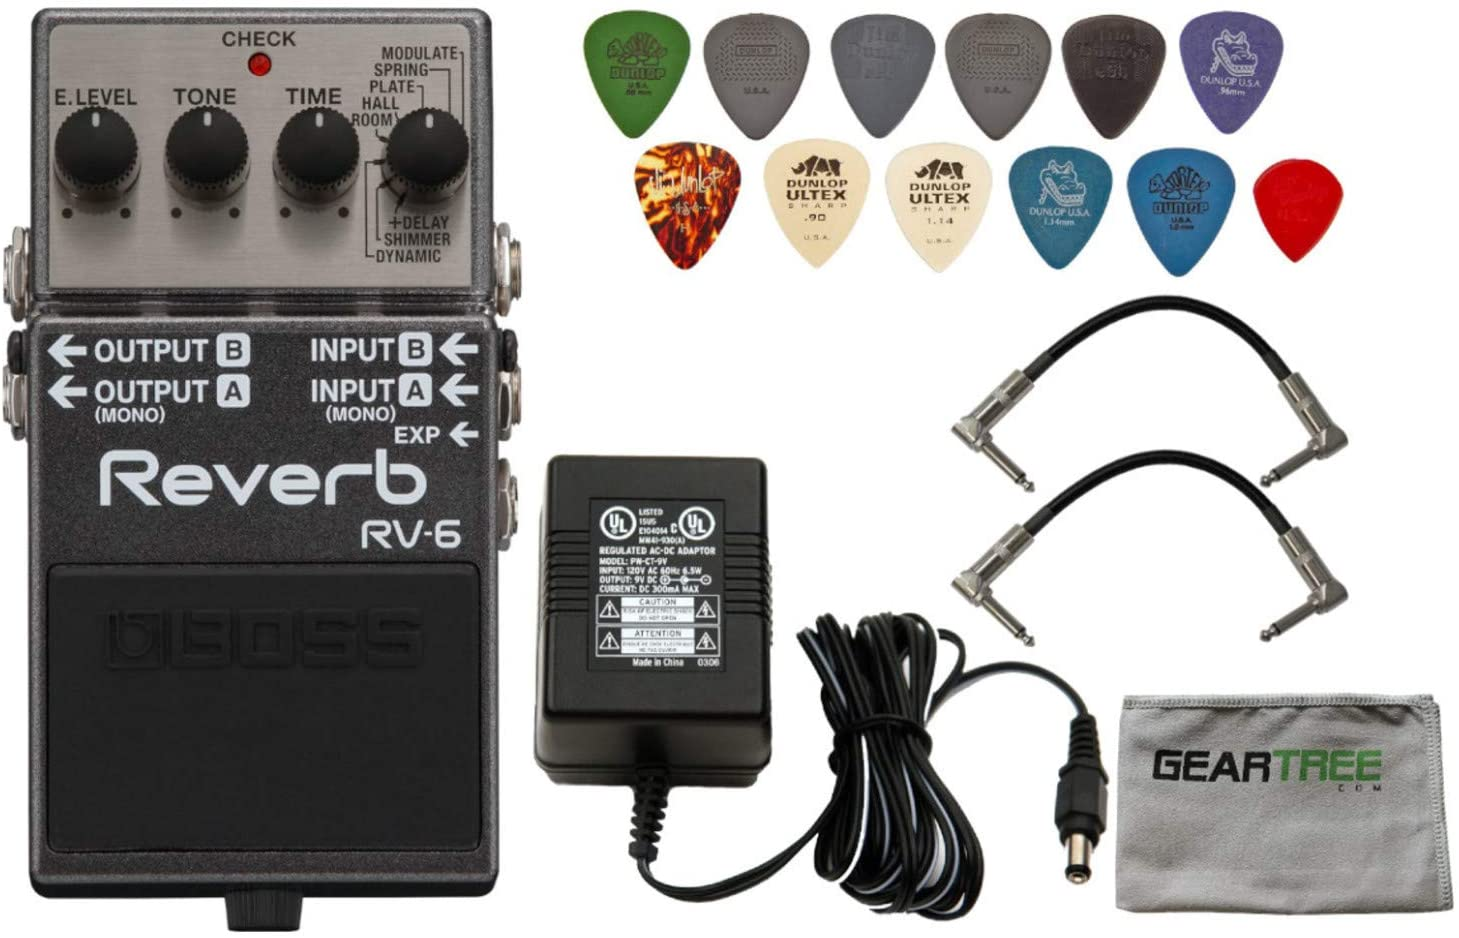 Boss RV-6 Digital Reverb Pedal w/Power Supply, 2 Patch Cables, Pick Pack, Cloth